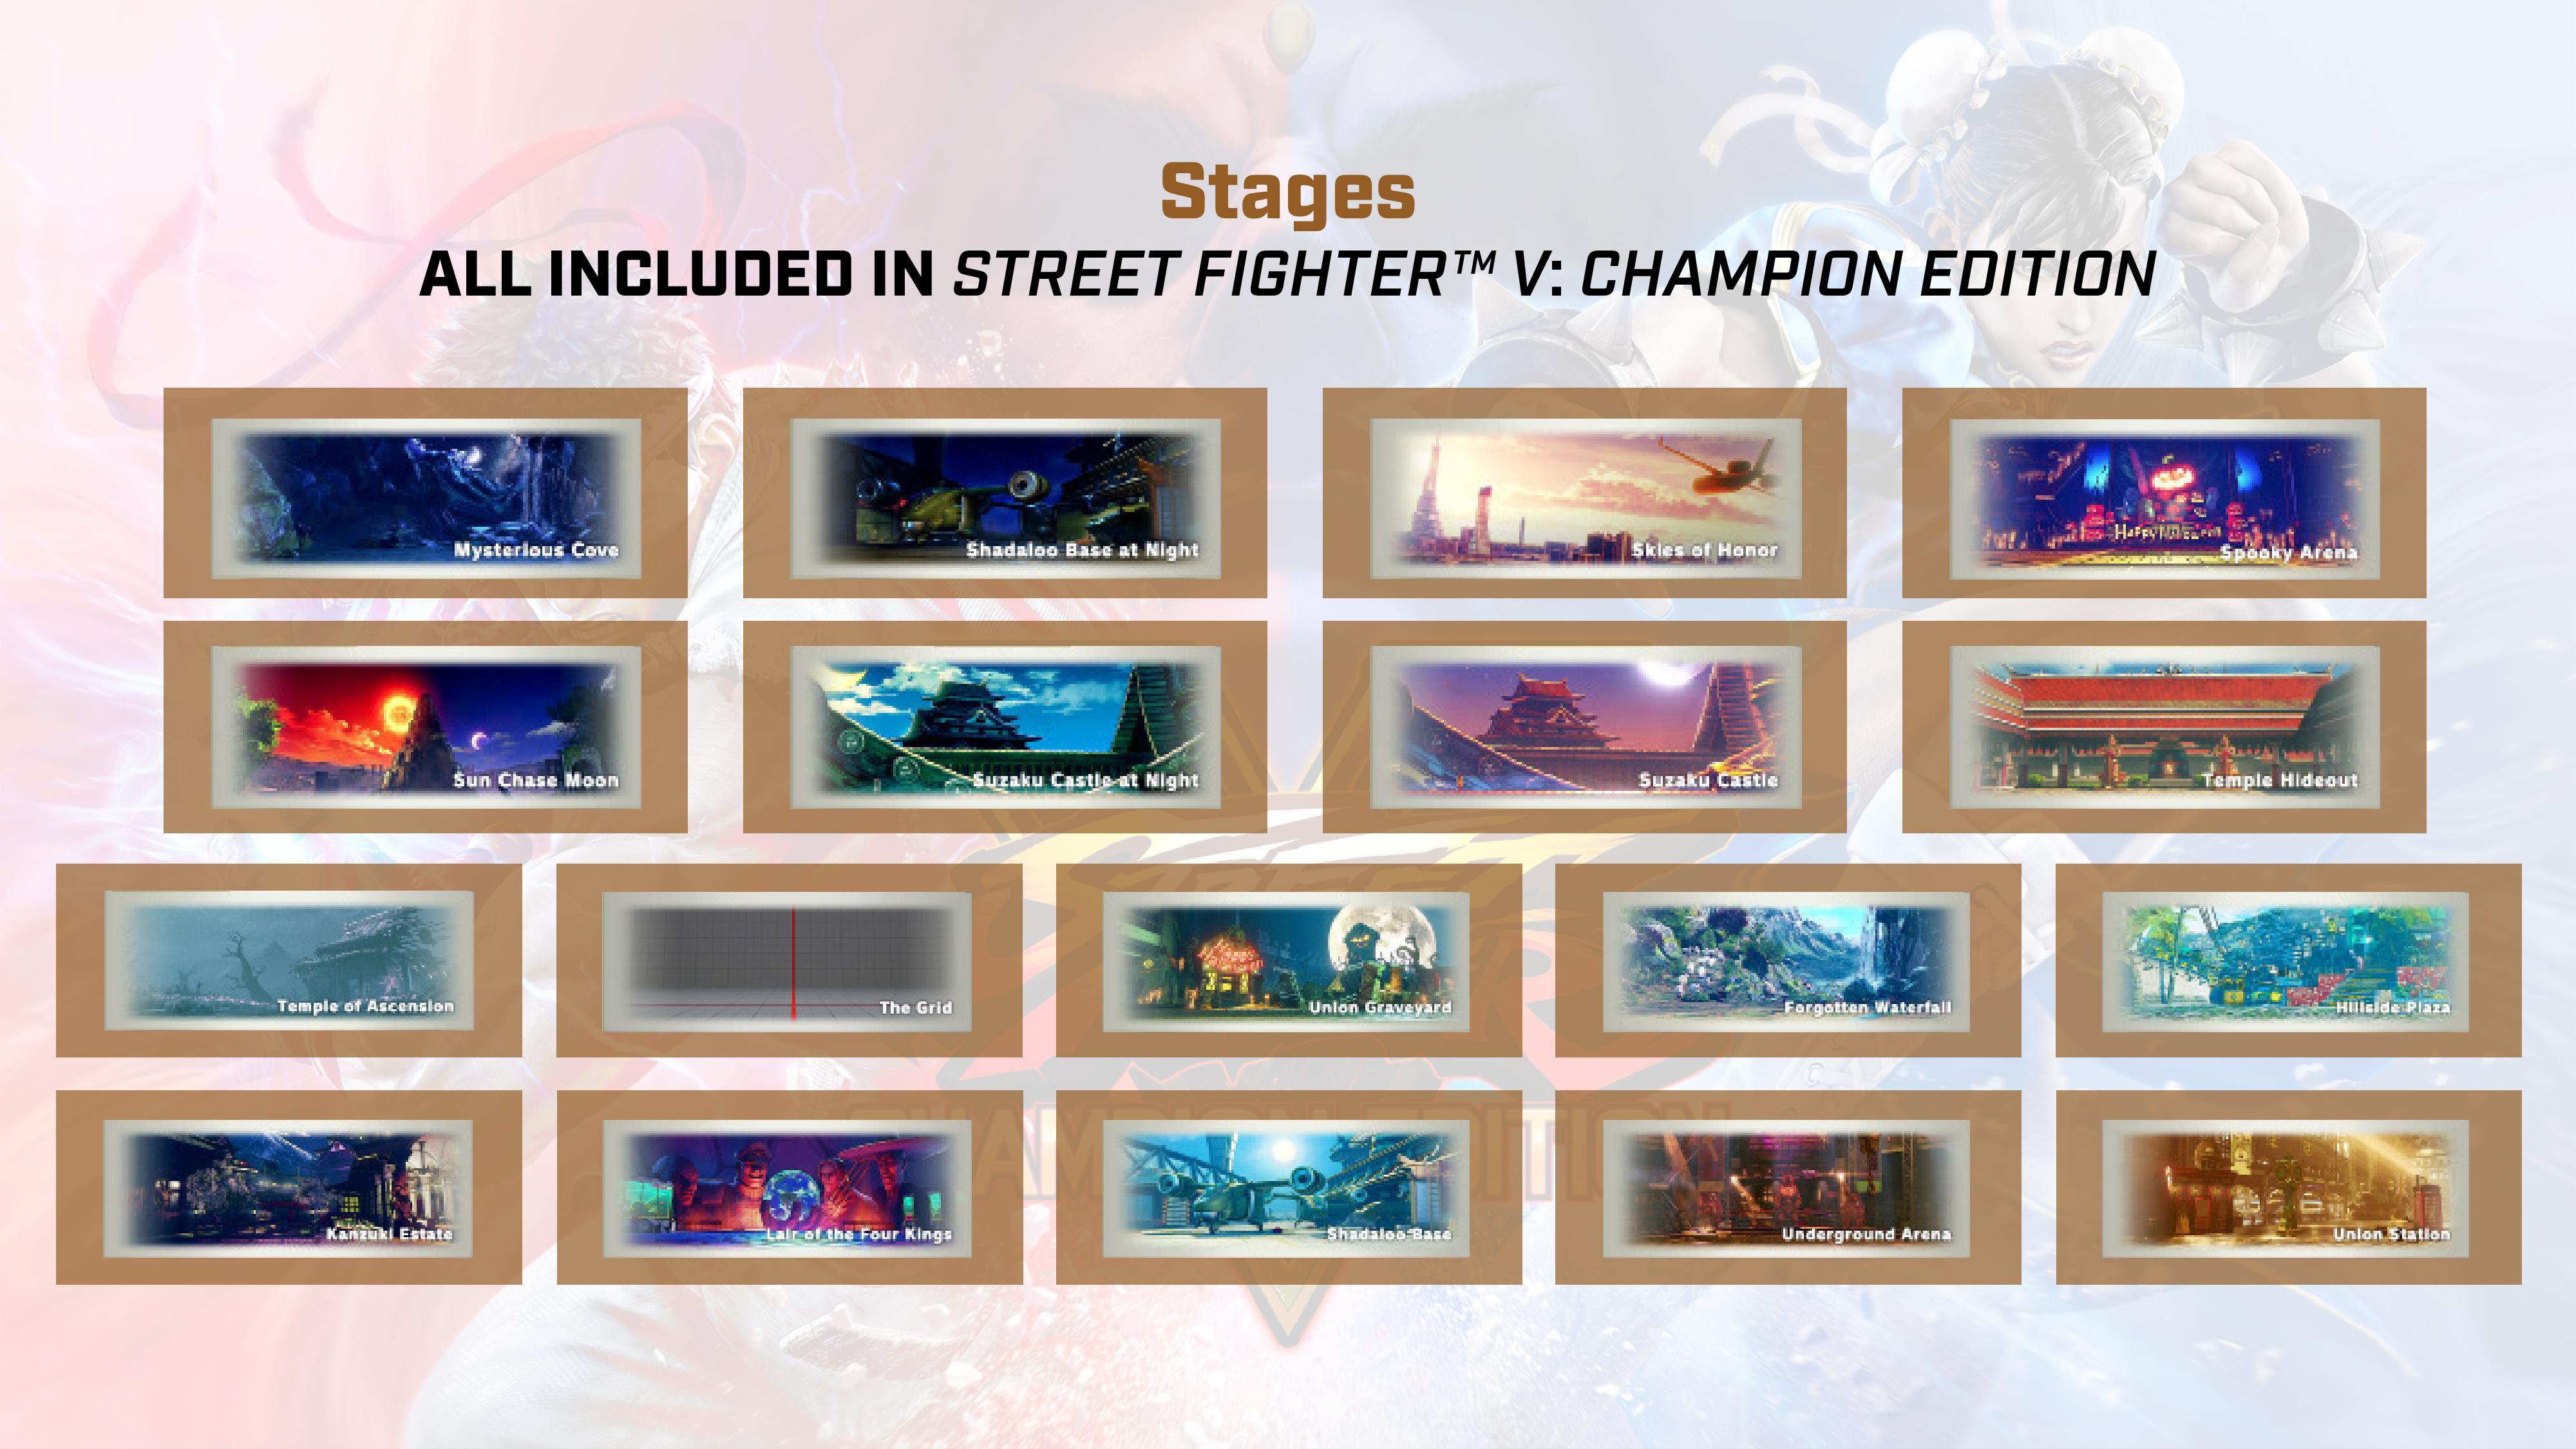 Street Fighter 5: Champion Edition contents 8 out of 9 image gallery